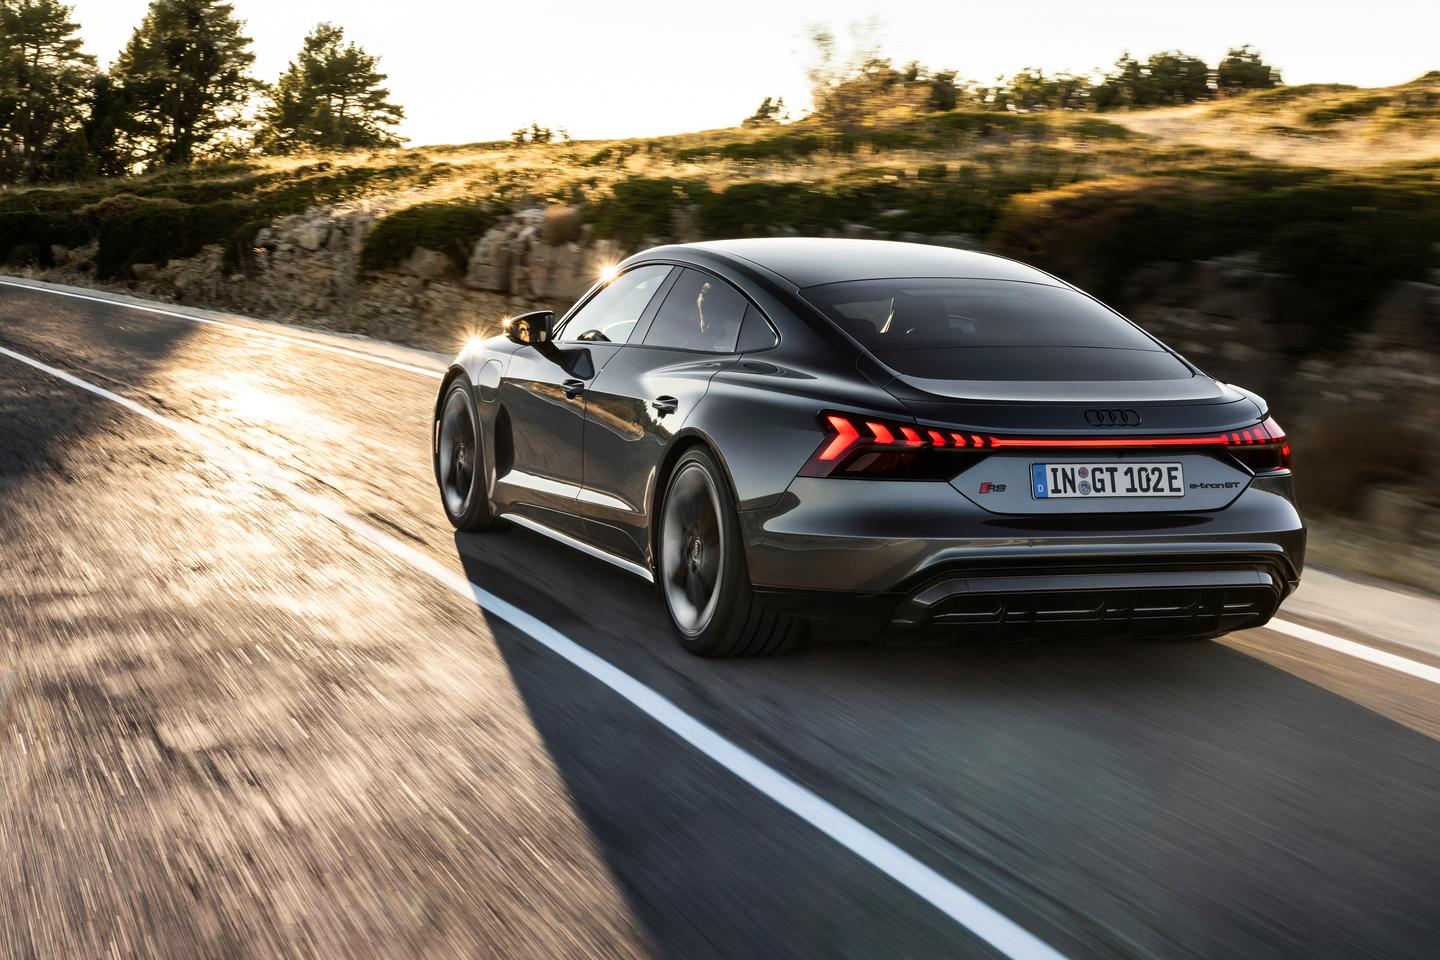 The e-tron GT is the latest step towards an electric vehicle future for Audi